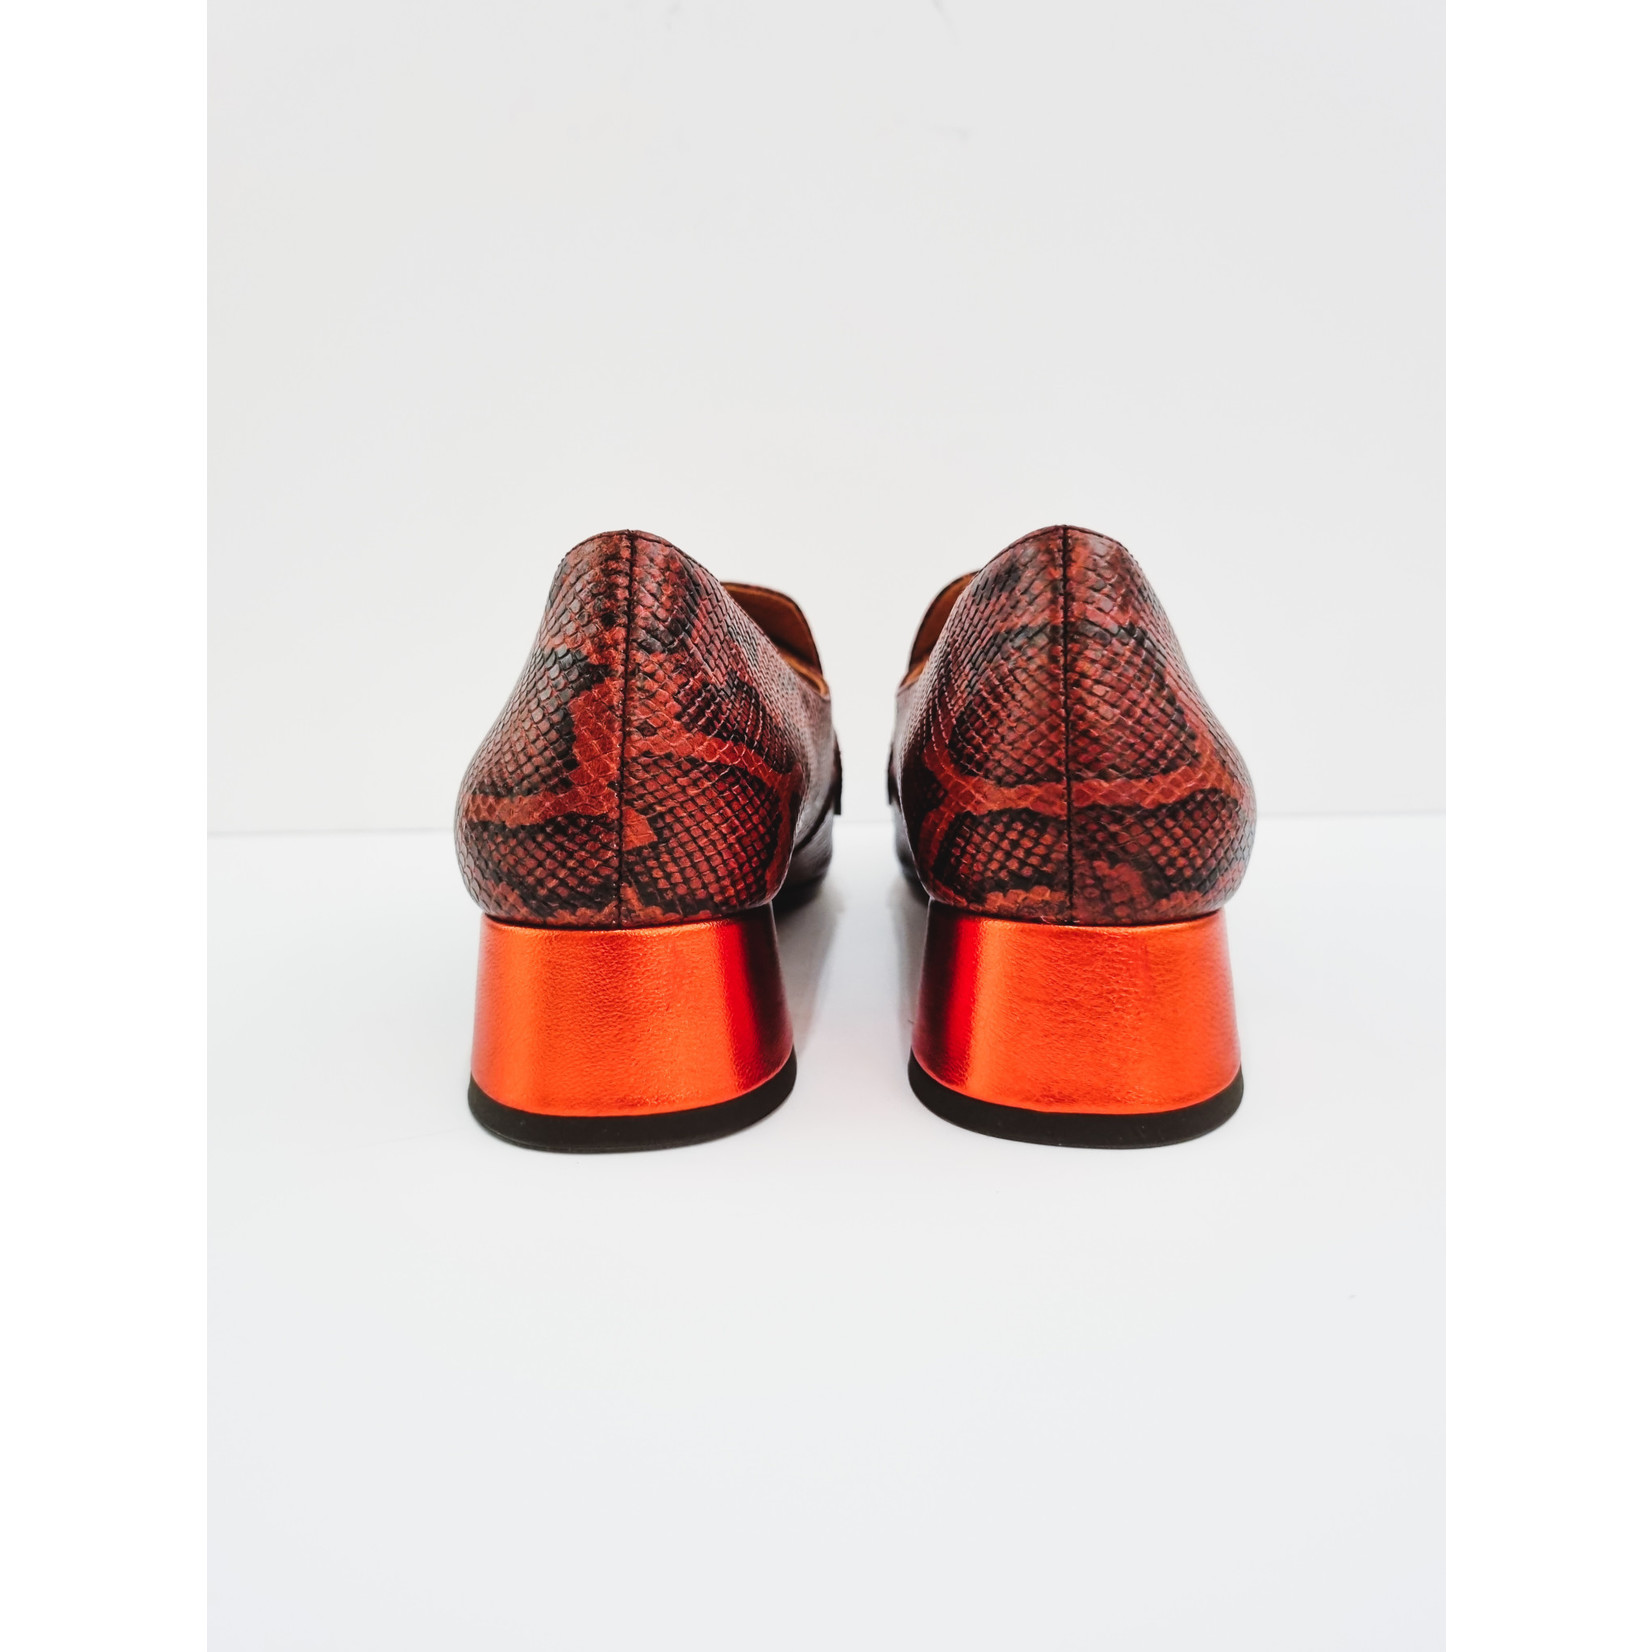 Spicy orange loafers